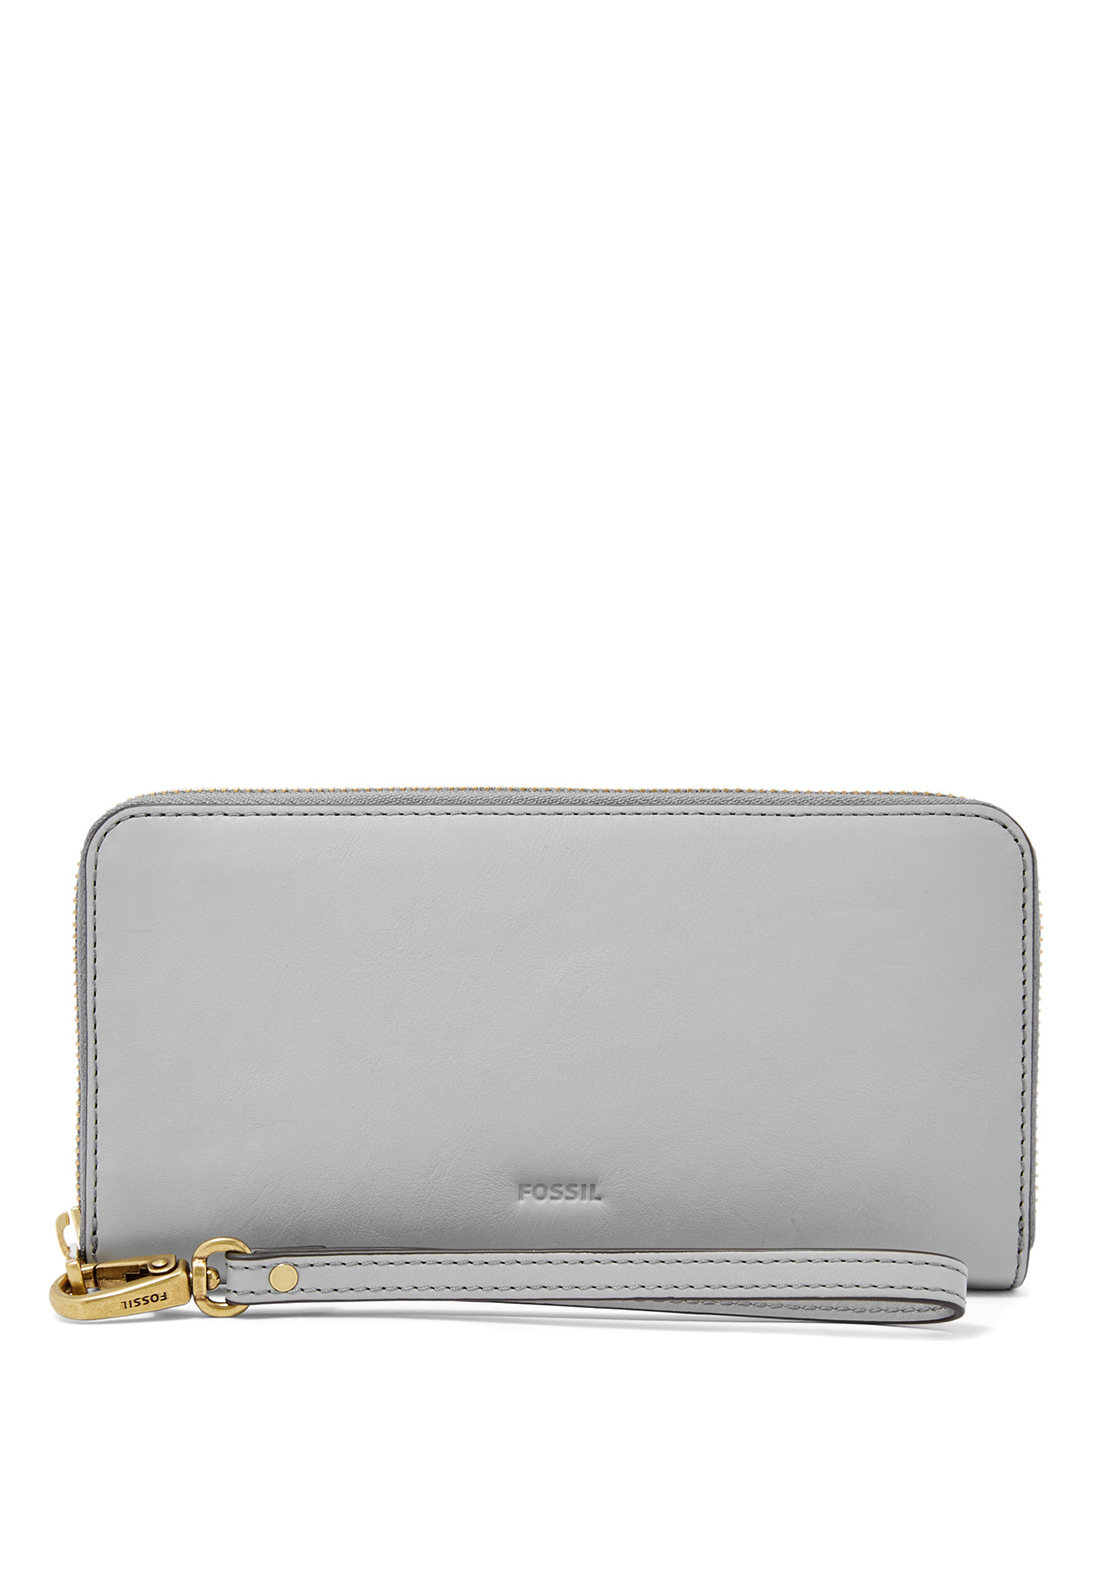 Fossil Emma Leather Zip Around Wristlet Purse, Iron